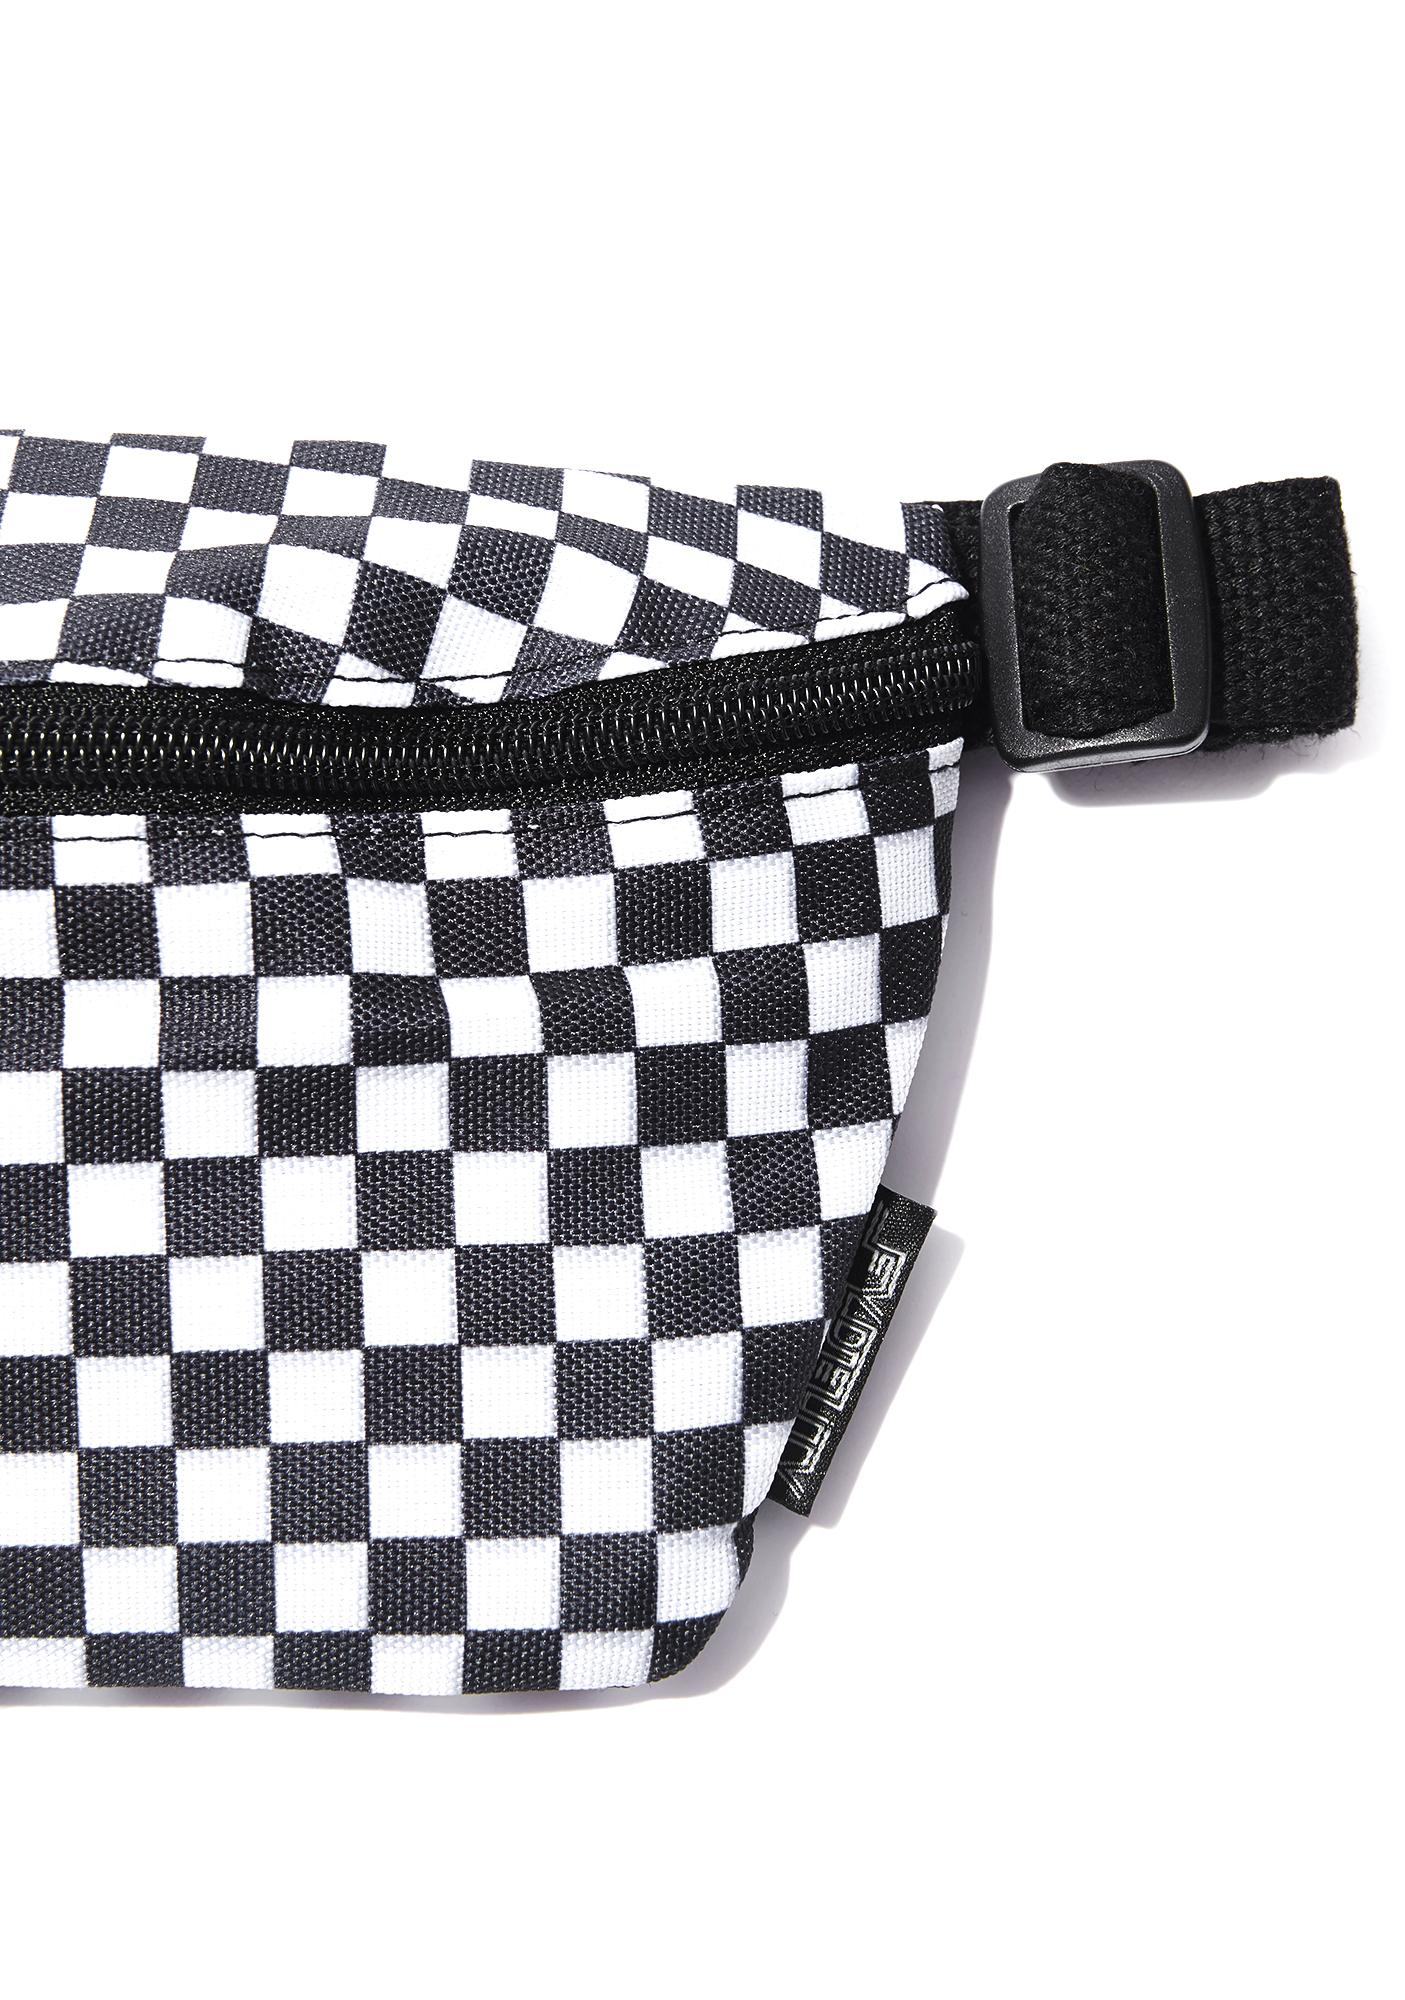 vans black and white checkerboard fanny pack